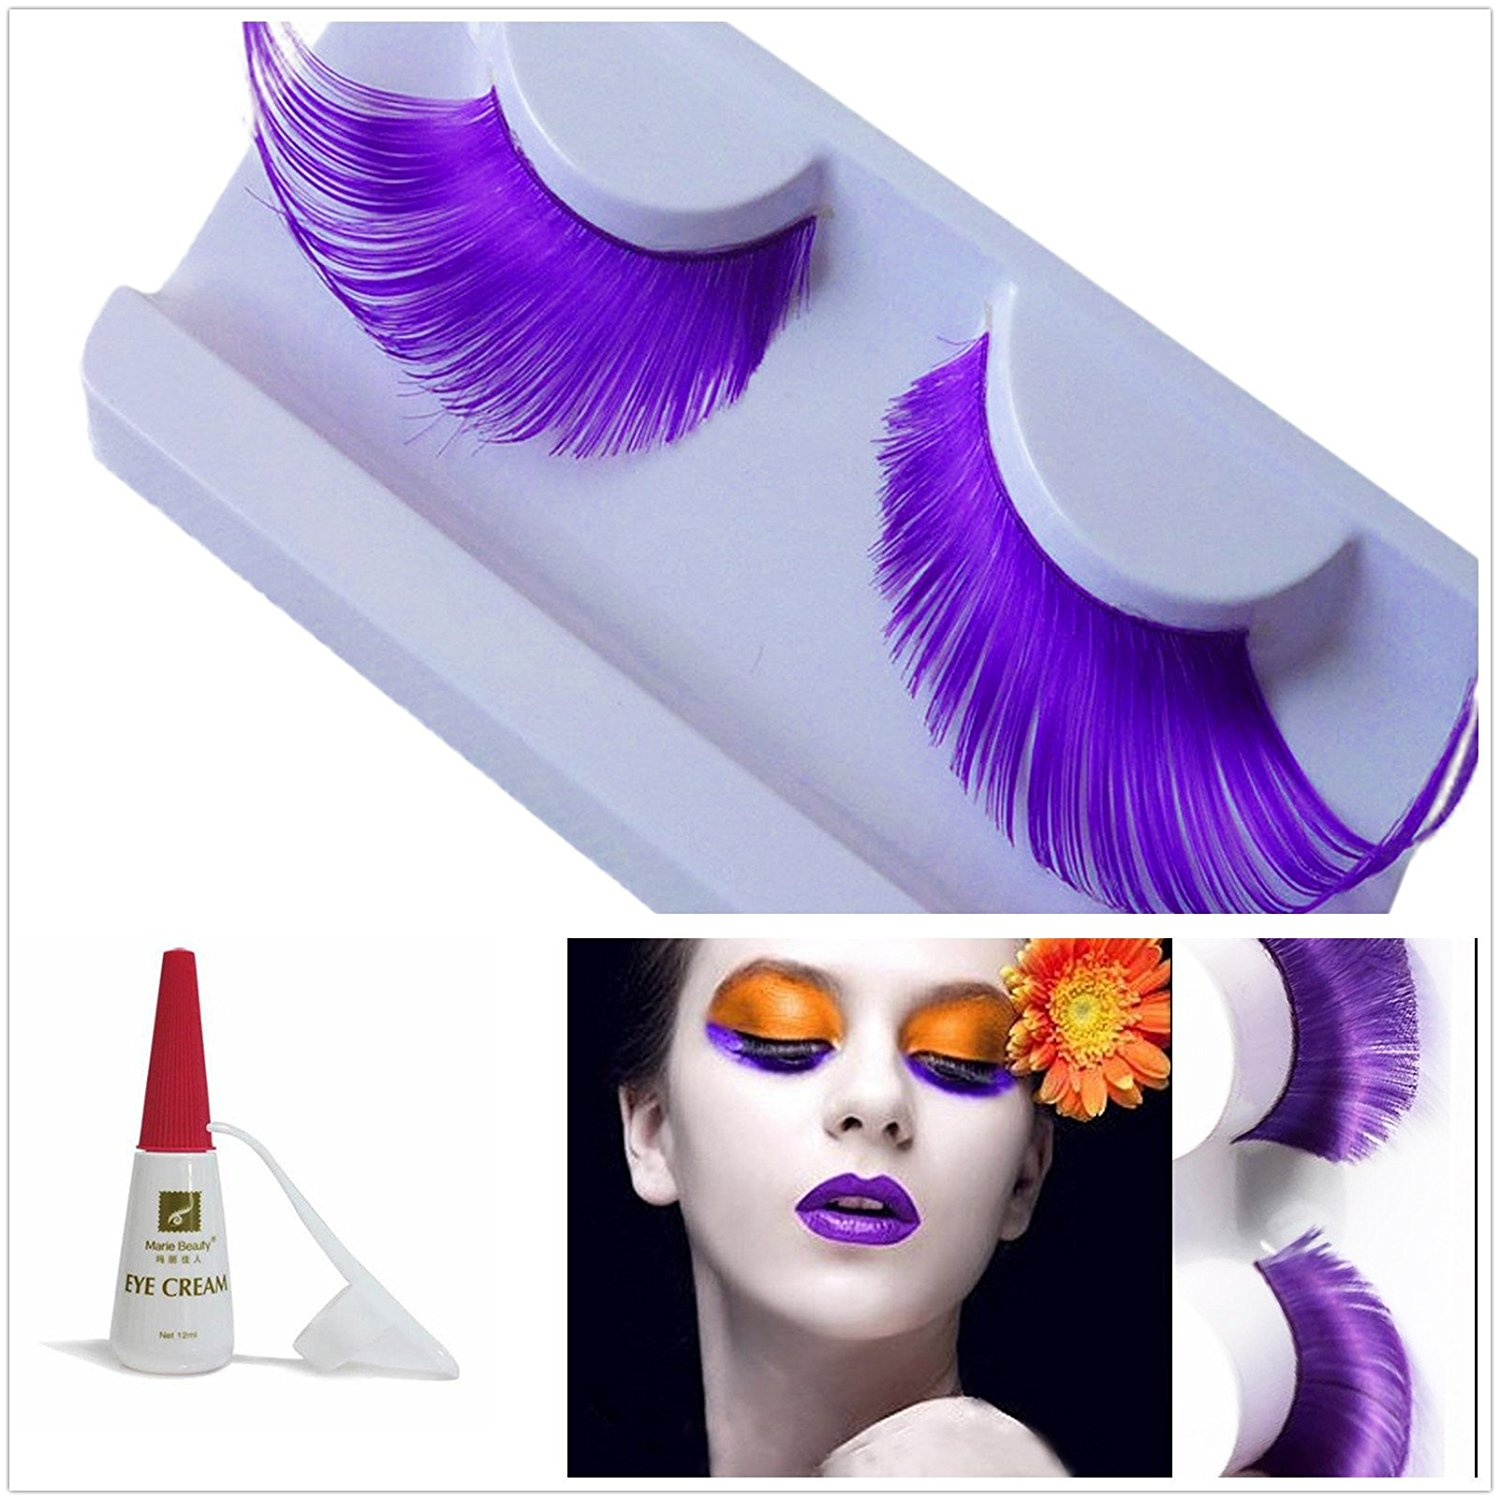 94a9371249c Get Quotations · Beauty II Girl Fancy Dress Dance Party Makeup  Multi-colored False Eyelashes Eye Lashes Extra